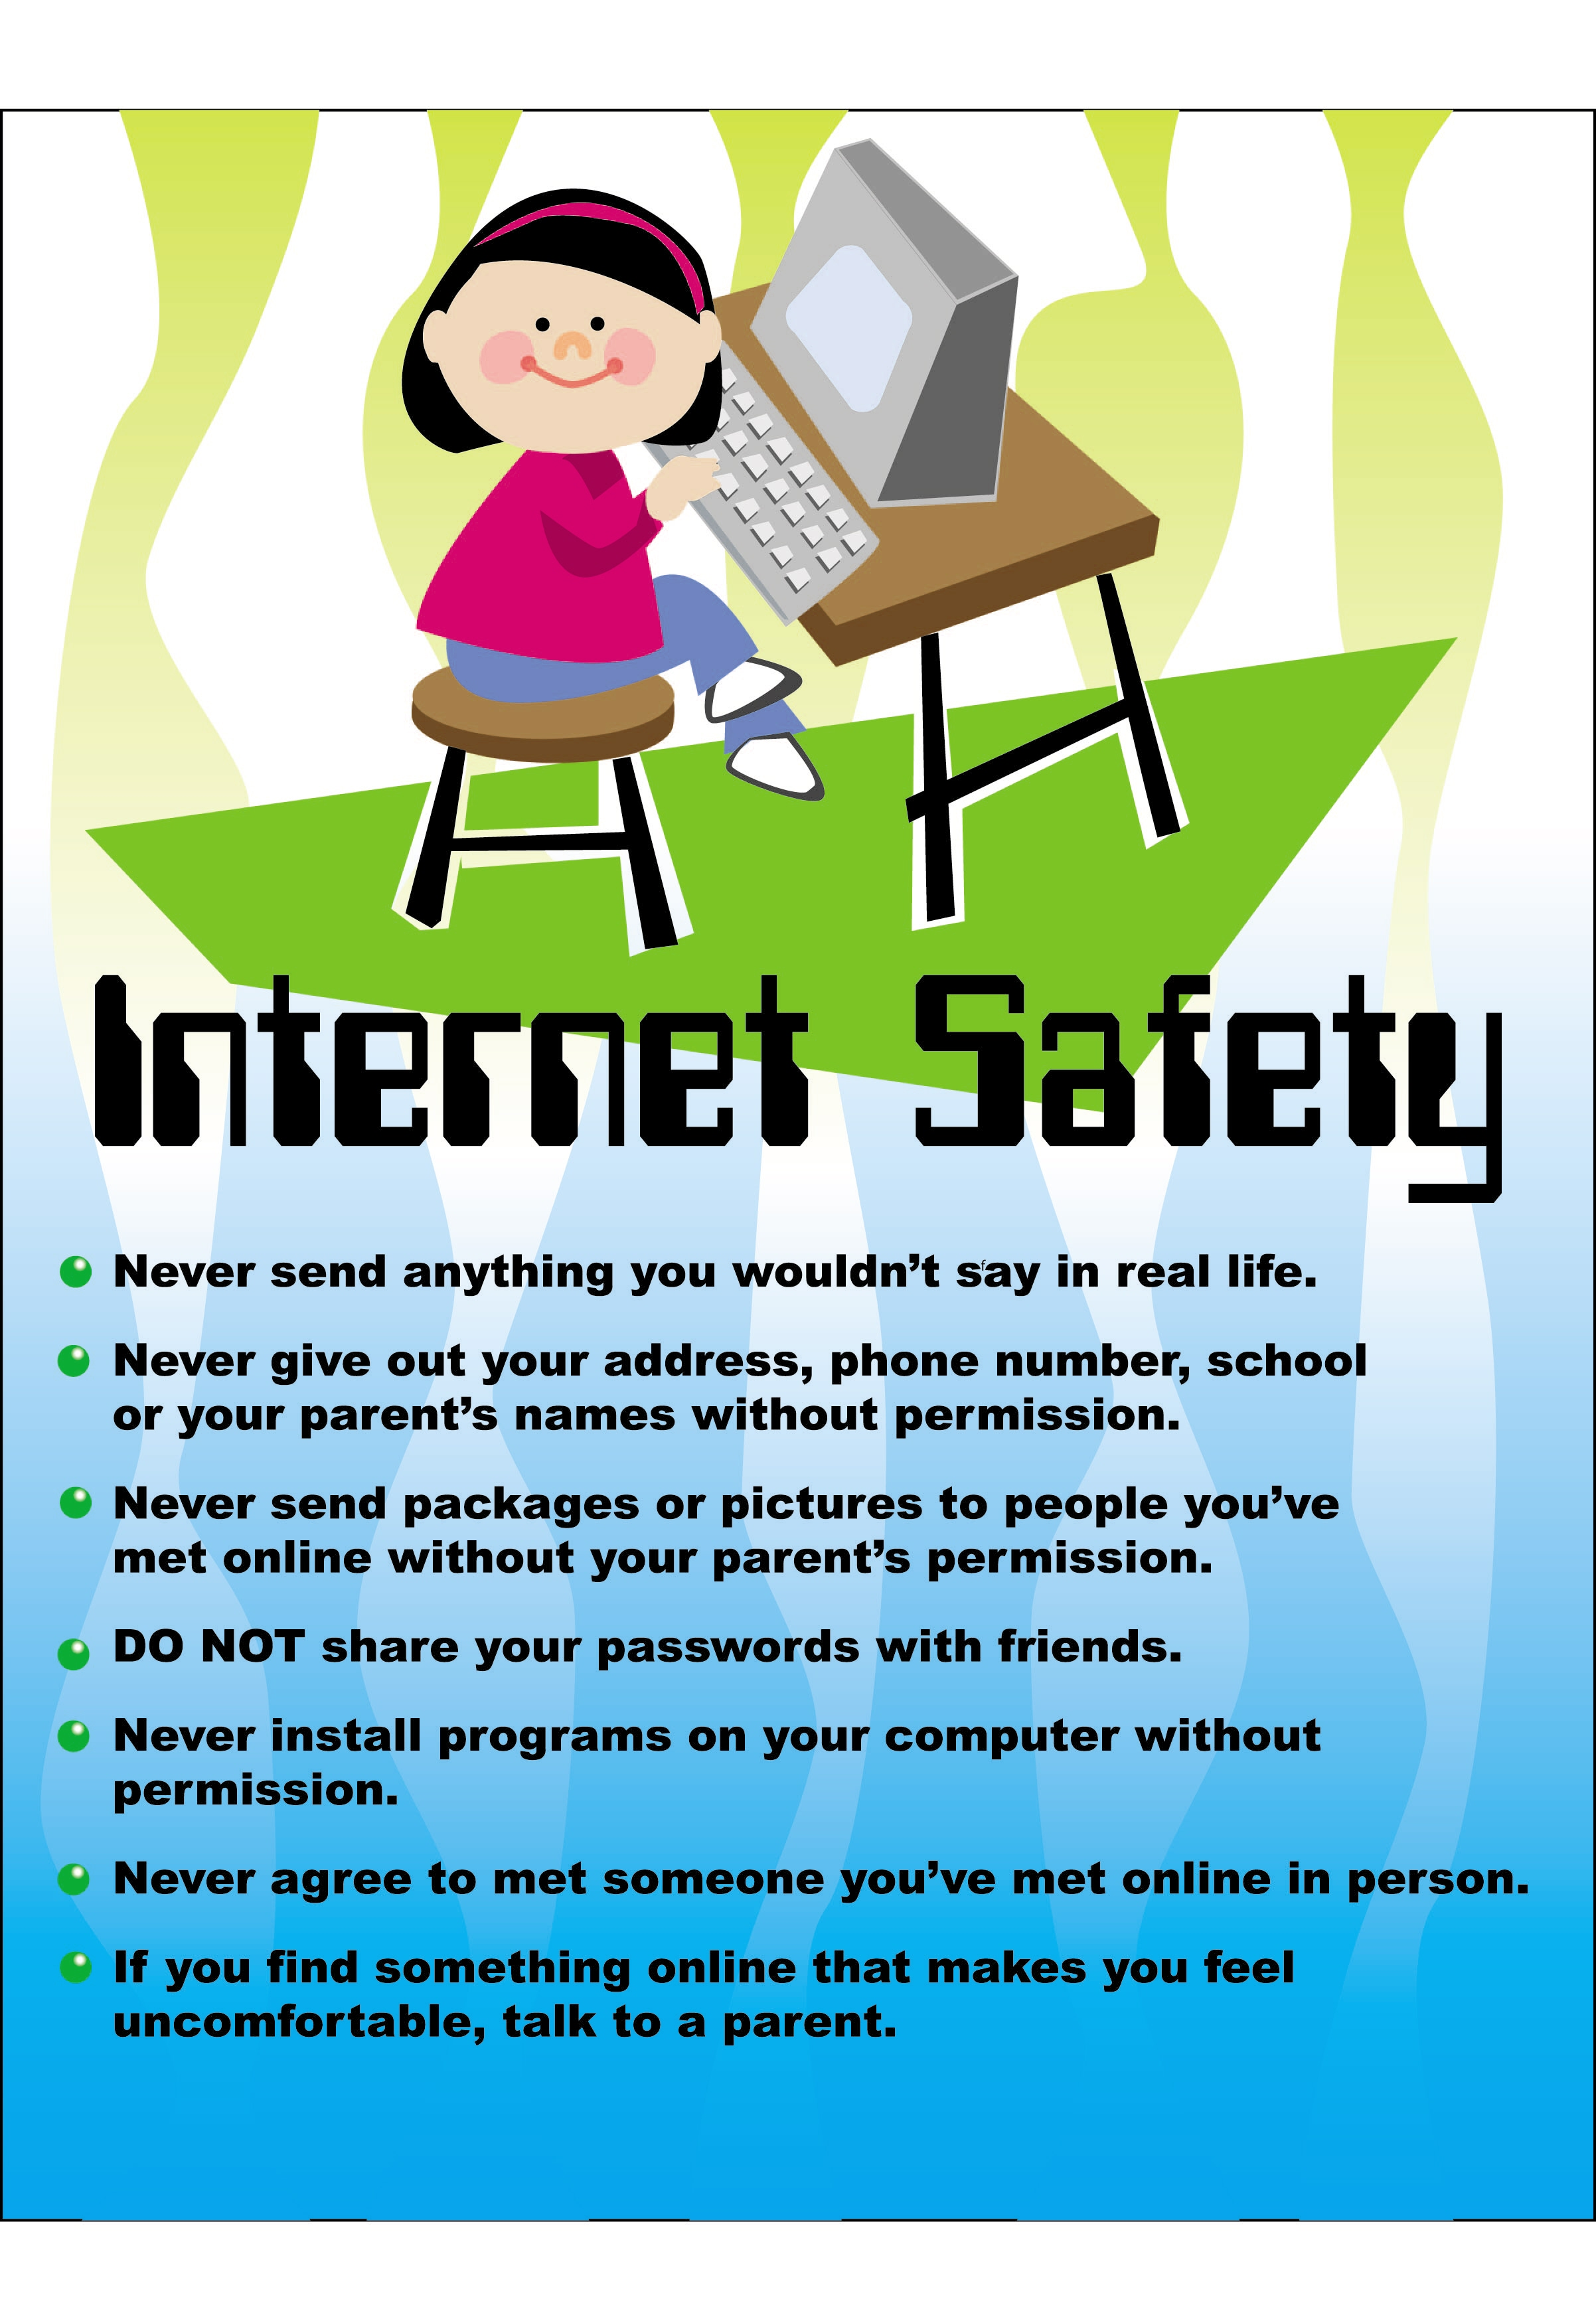 E safety poster designs - Internet Safety Poster